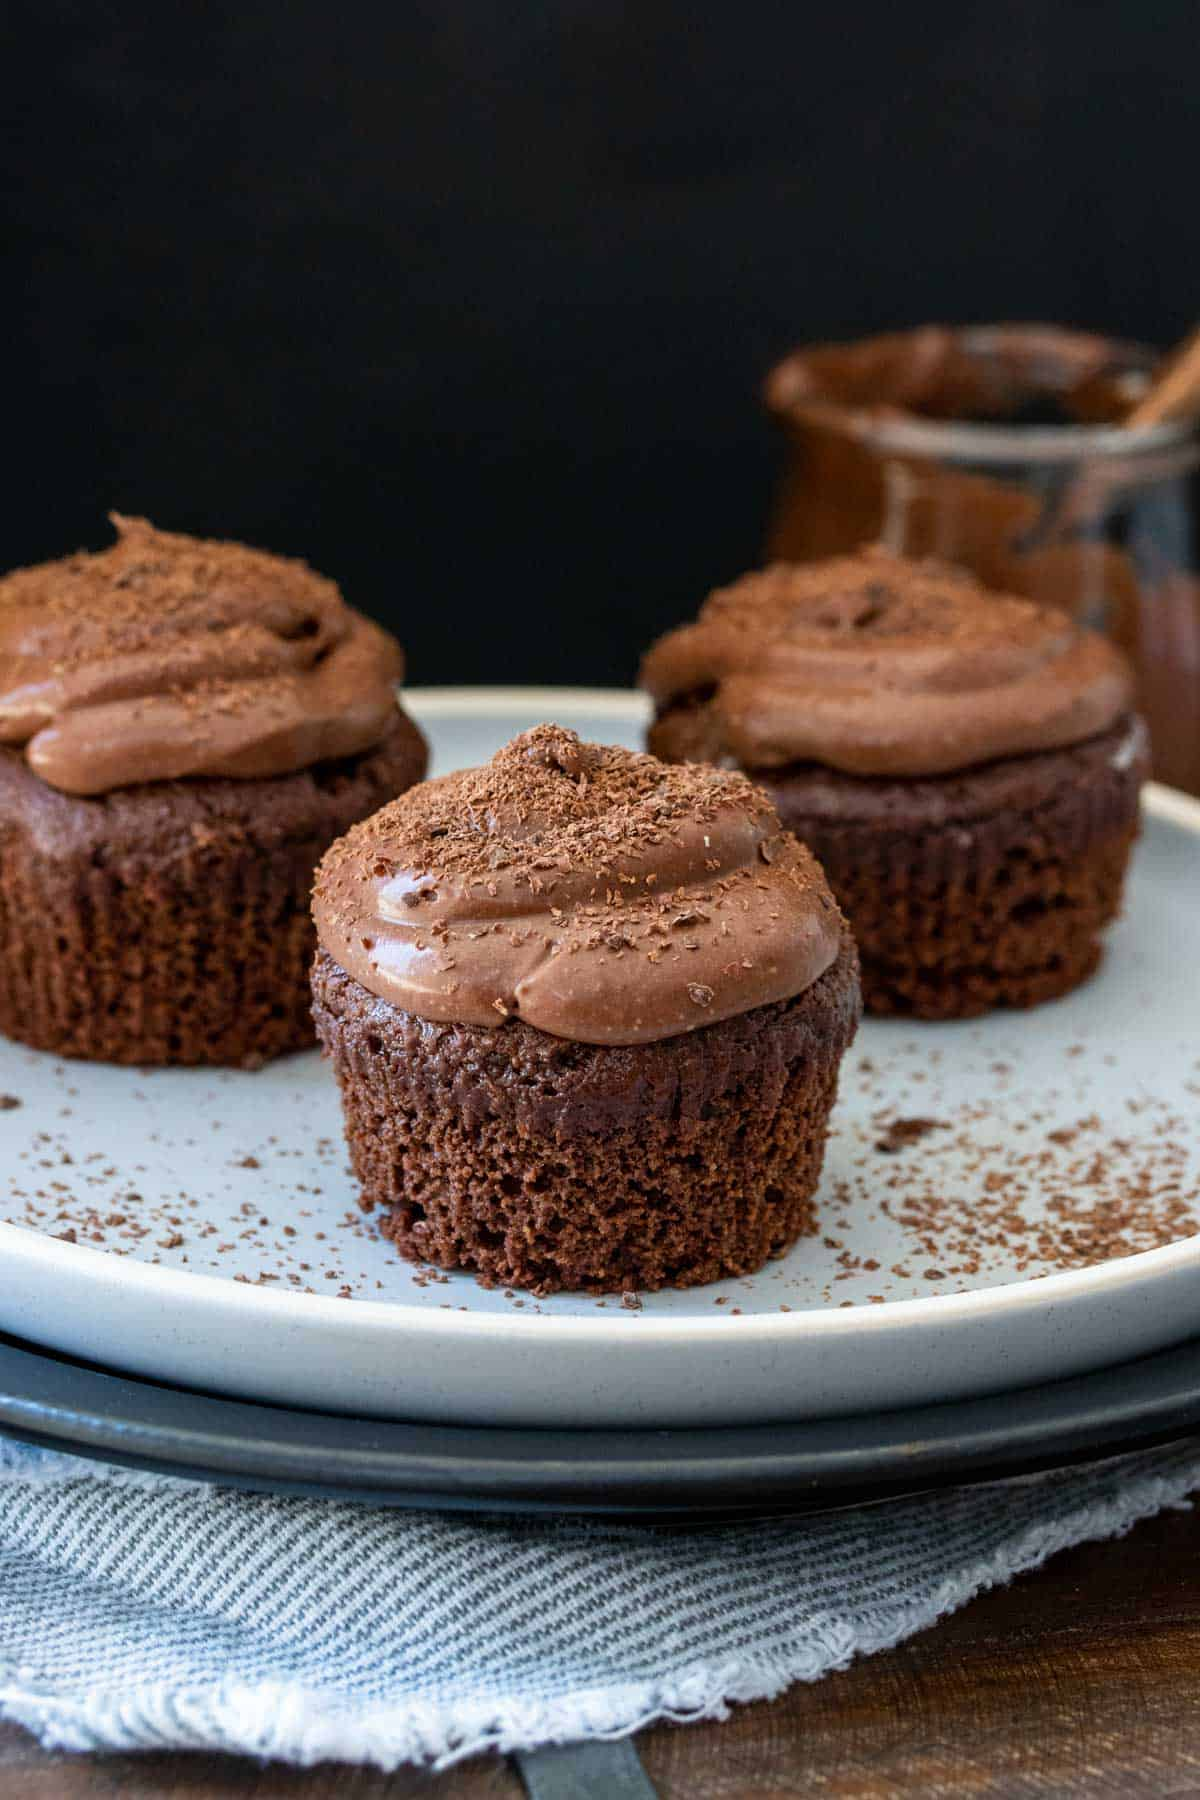 Chocolate cupcakes with chocolate frosting and no liners on a white plate